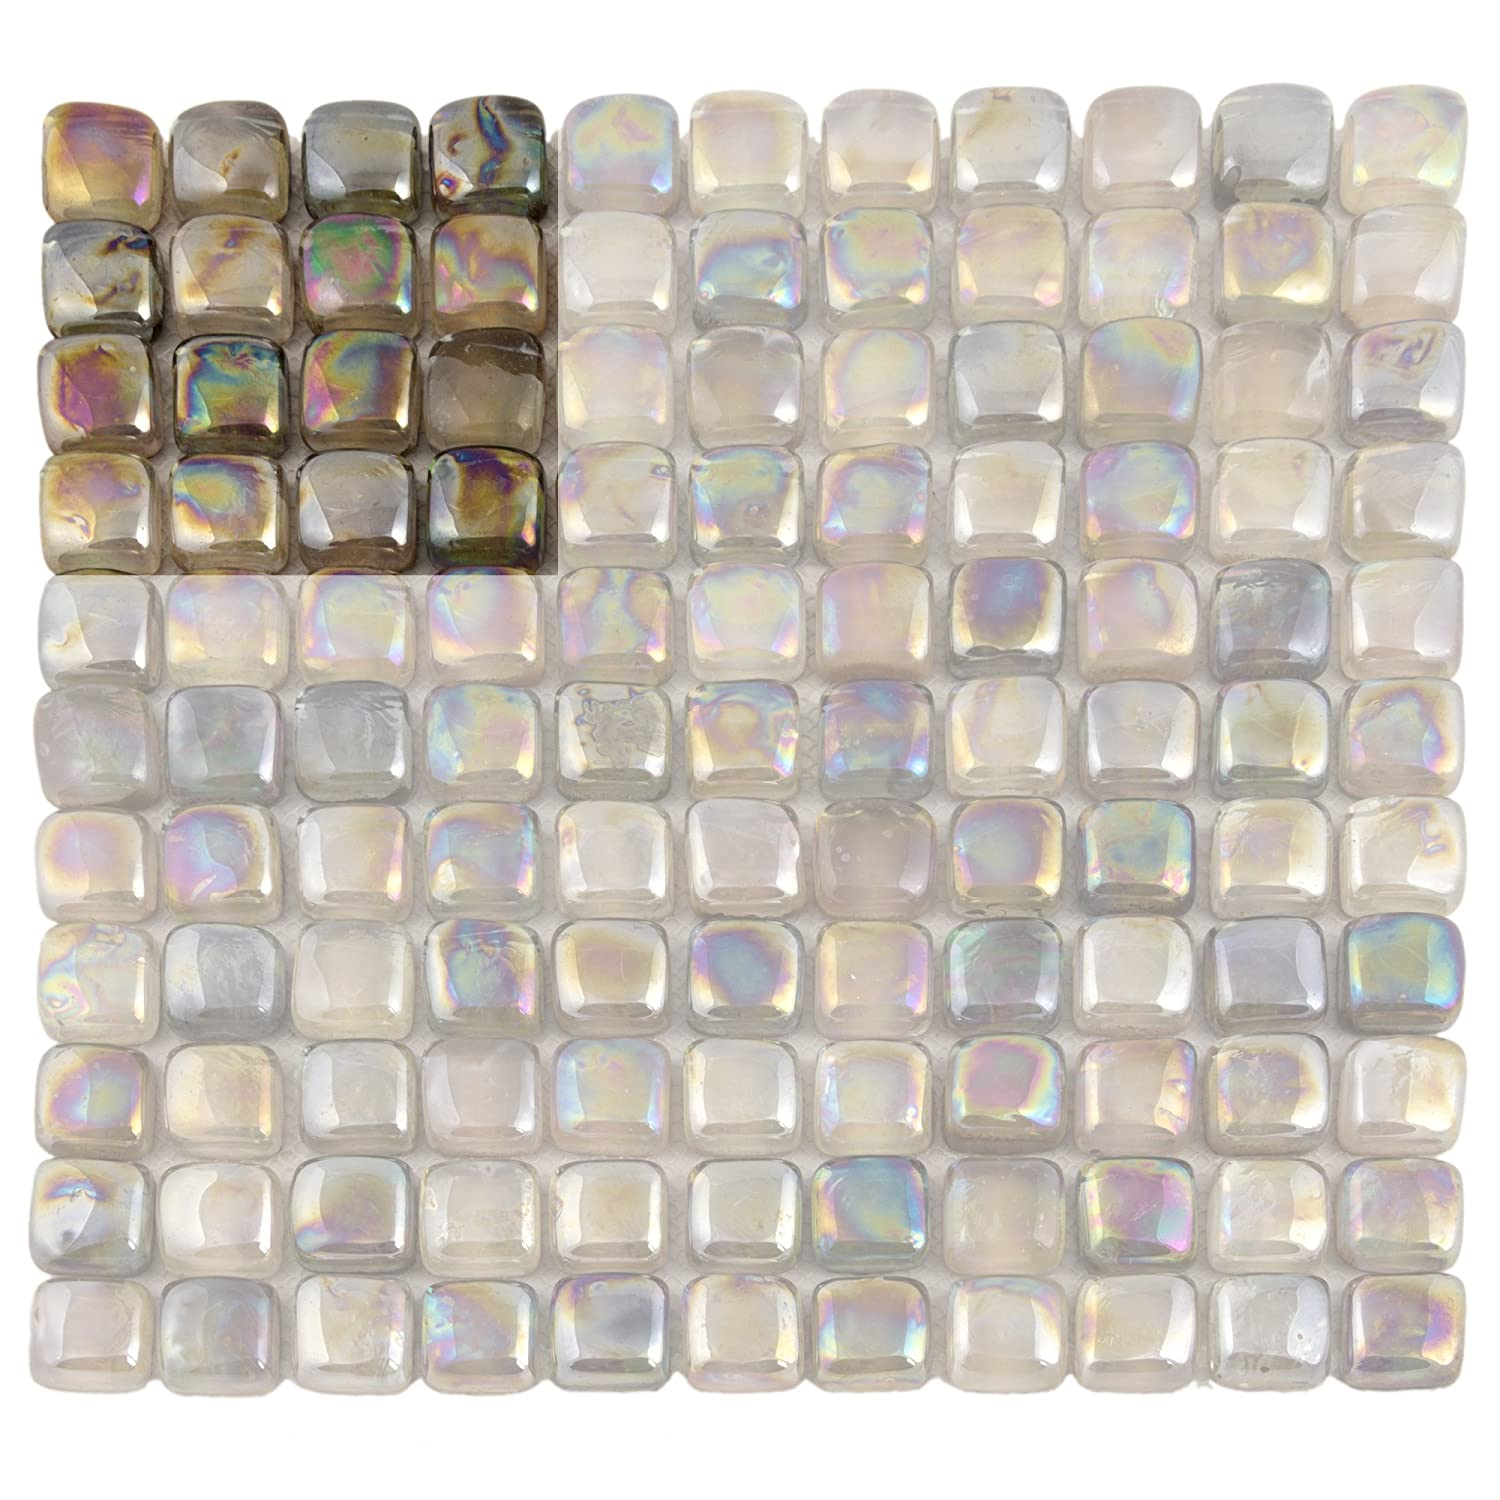 Rounded Mosaic Tiles – Special line of Bathroom Glass Mosaic Tile – Glossy elegant convex mosaic tiles ( Sample 4x4 inch, Sandy beach ) durable modeling